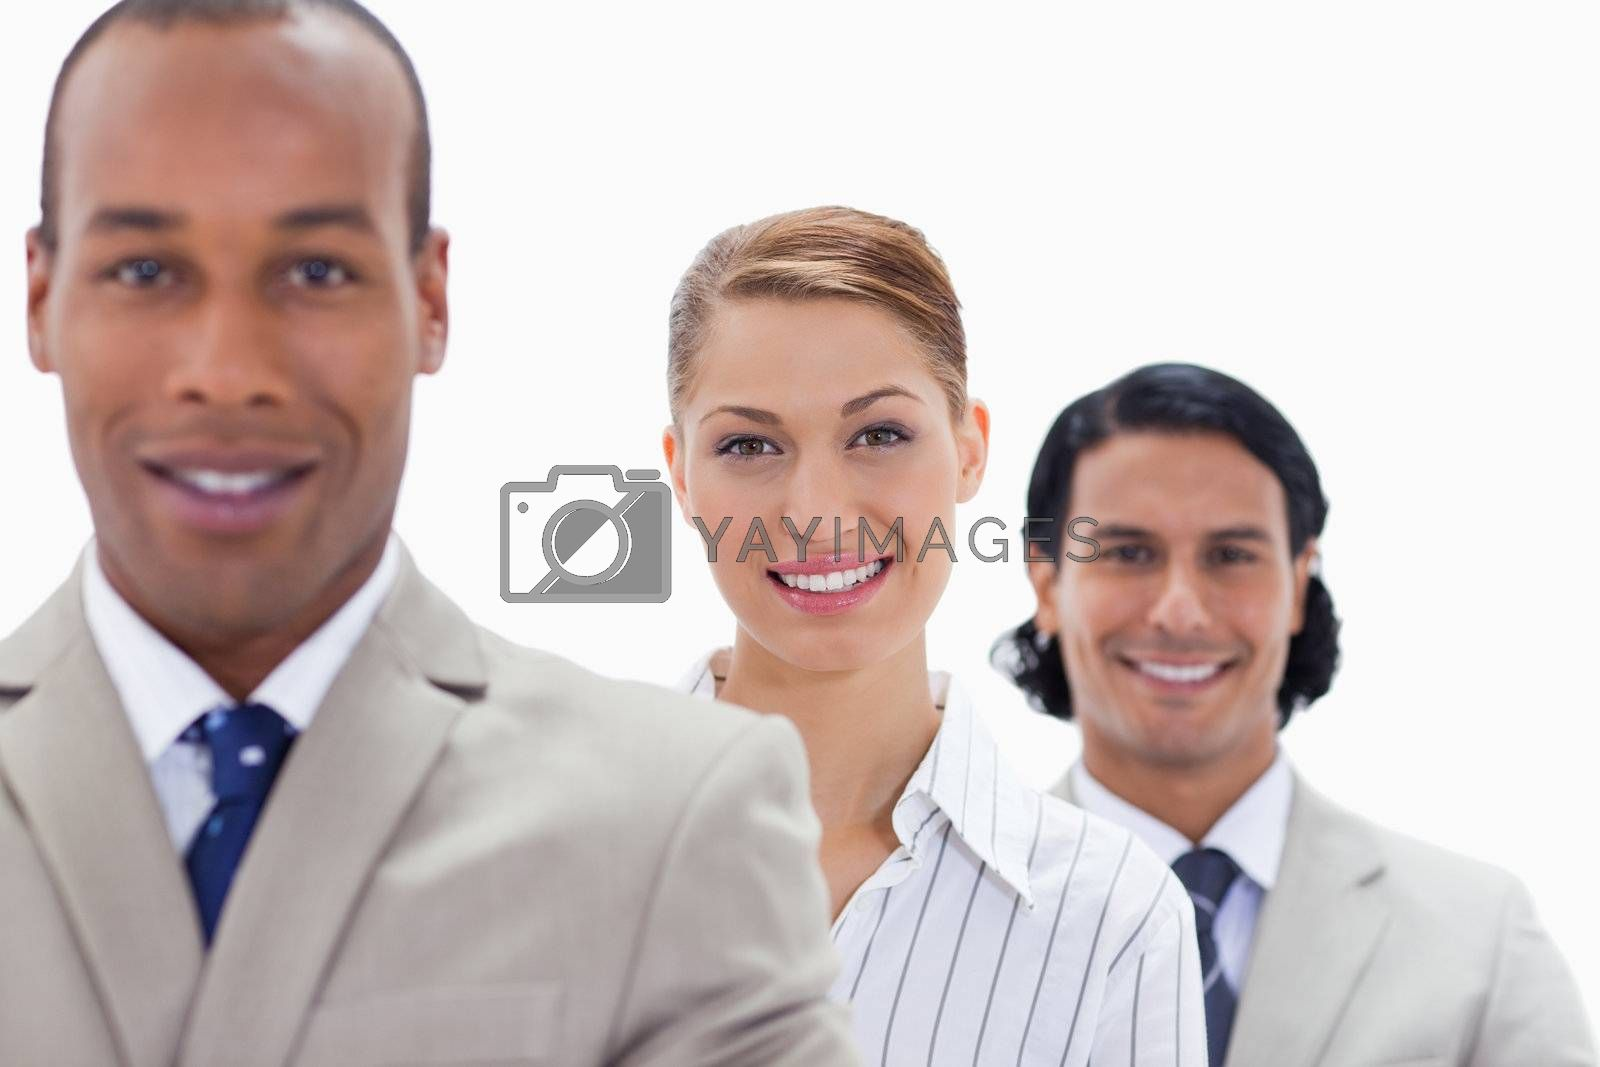 Big close-up of colleagues smiling in a single line with focus on the woman